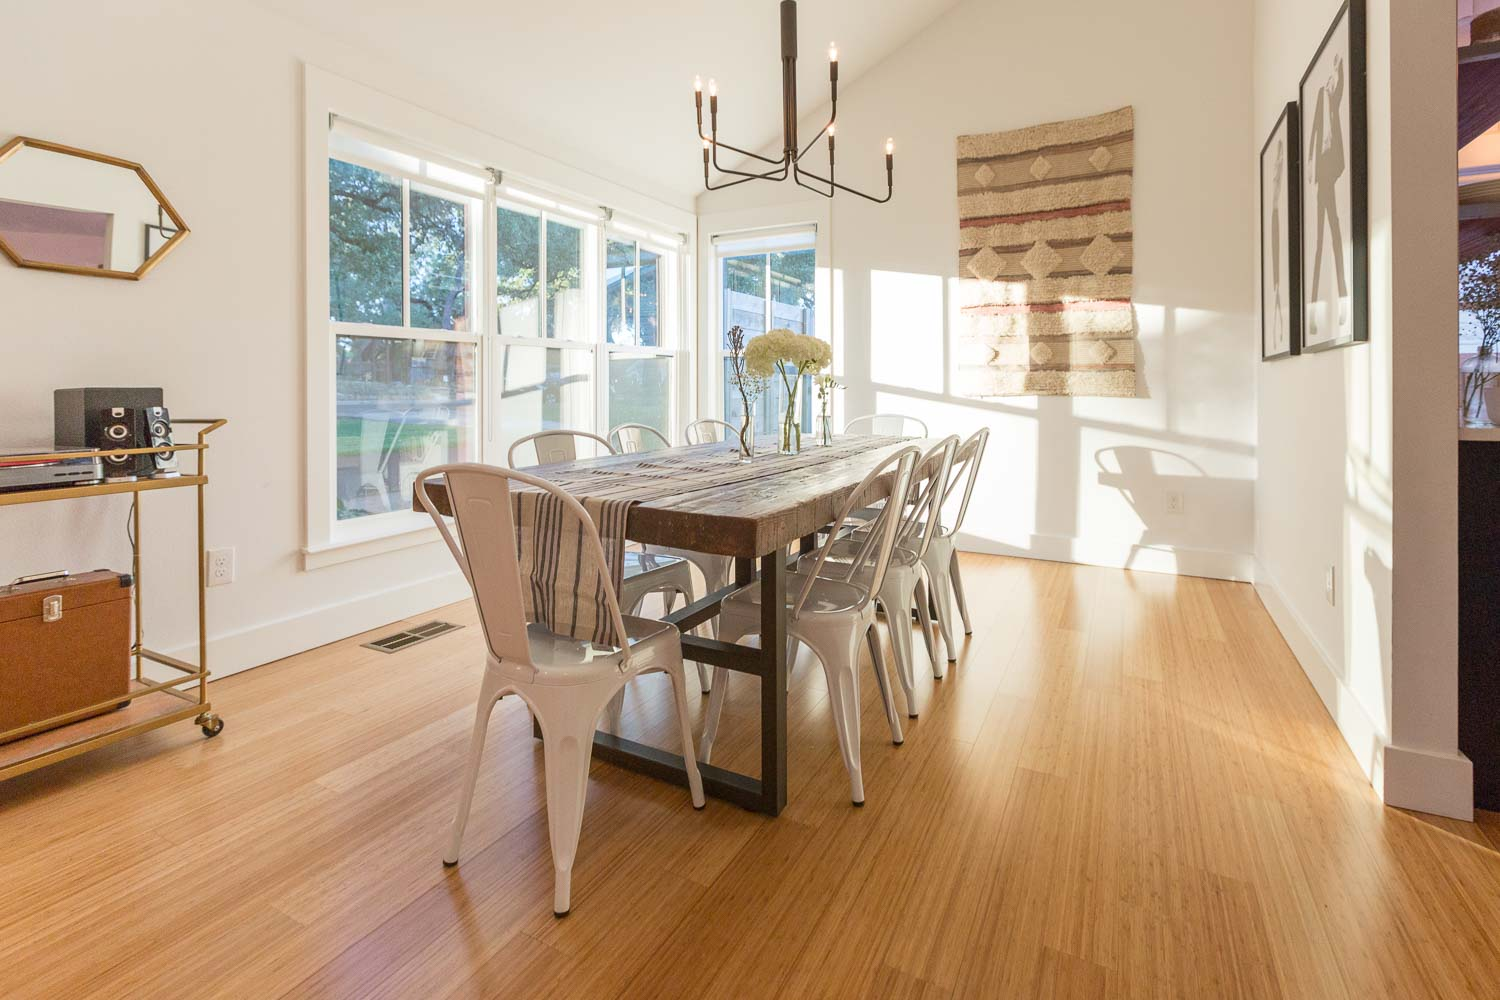 We love the homeowner's decor and light fixture combined with our thoughtful window placement, ceiling vaults, and floorplan designs in this modern dining room.